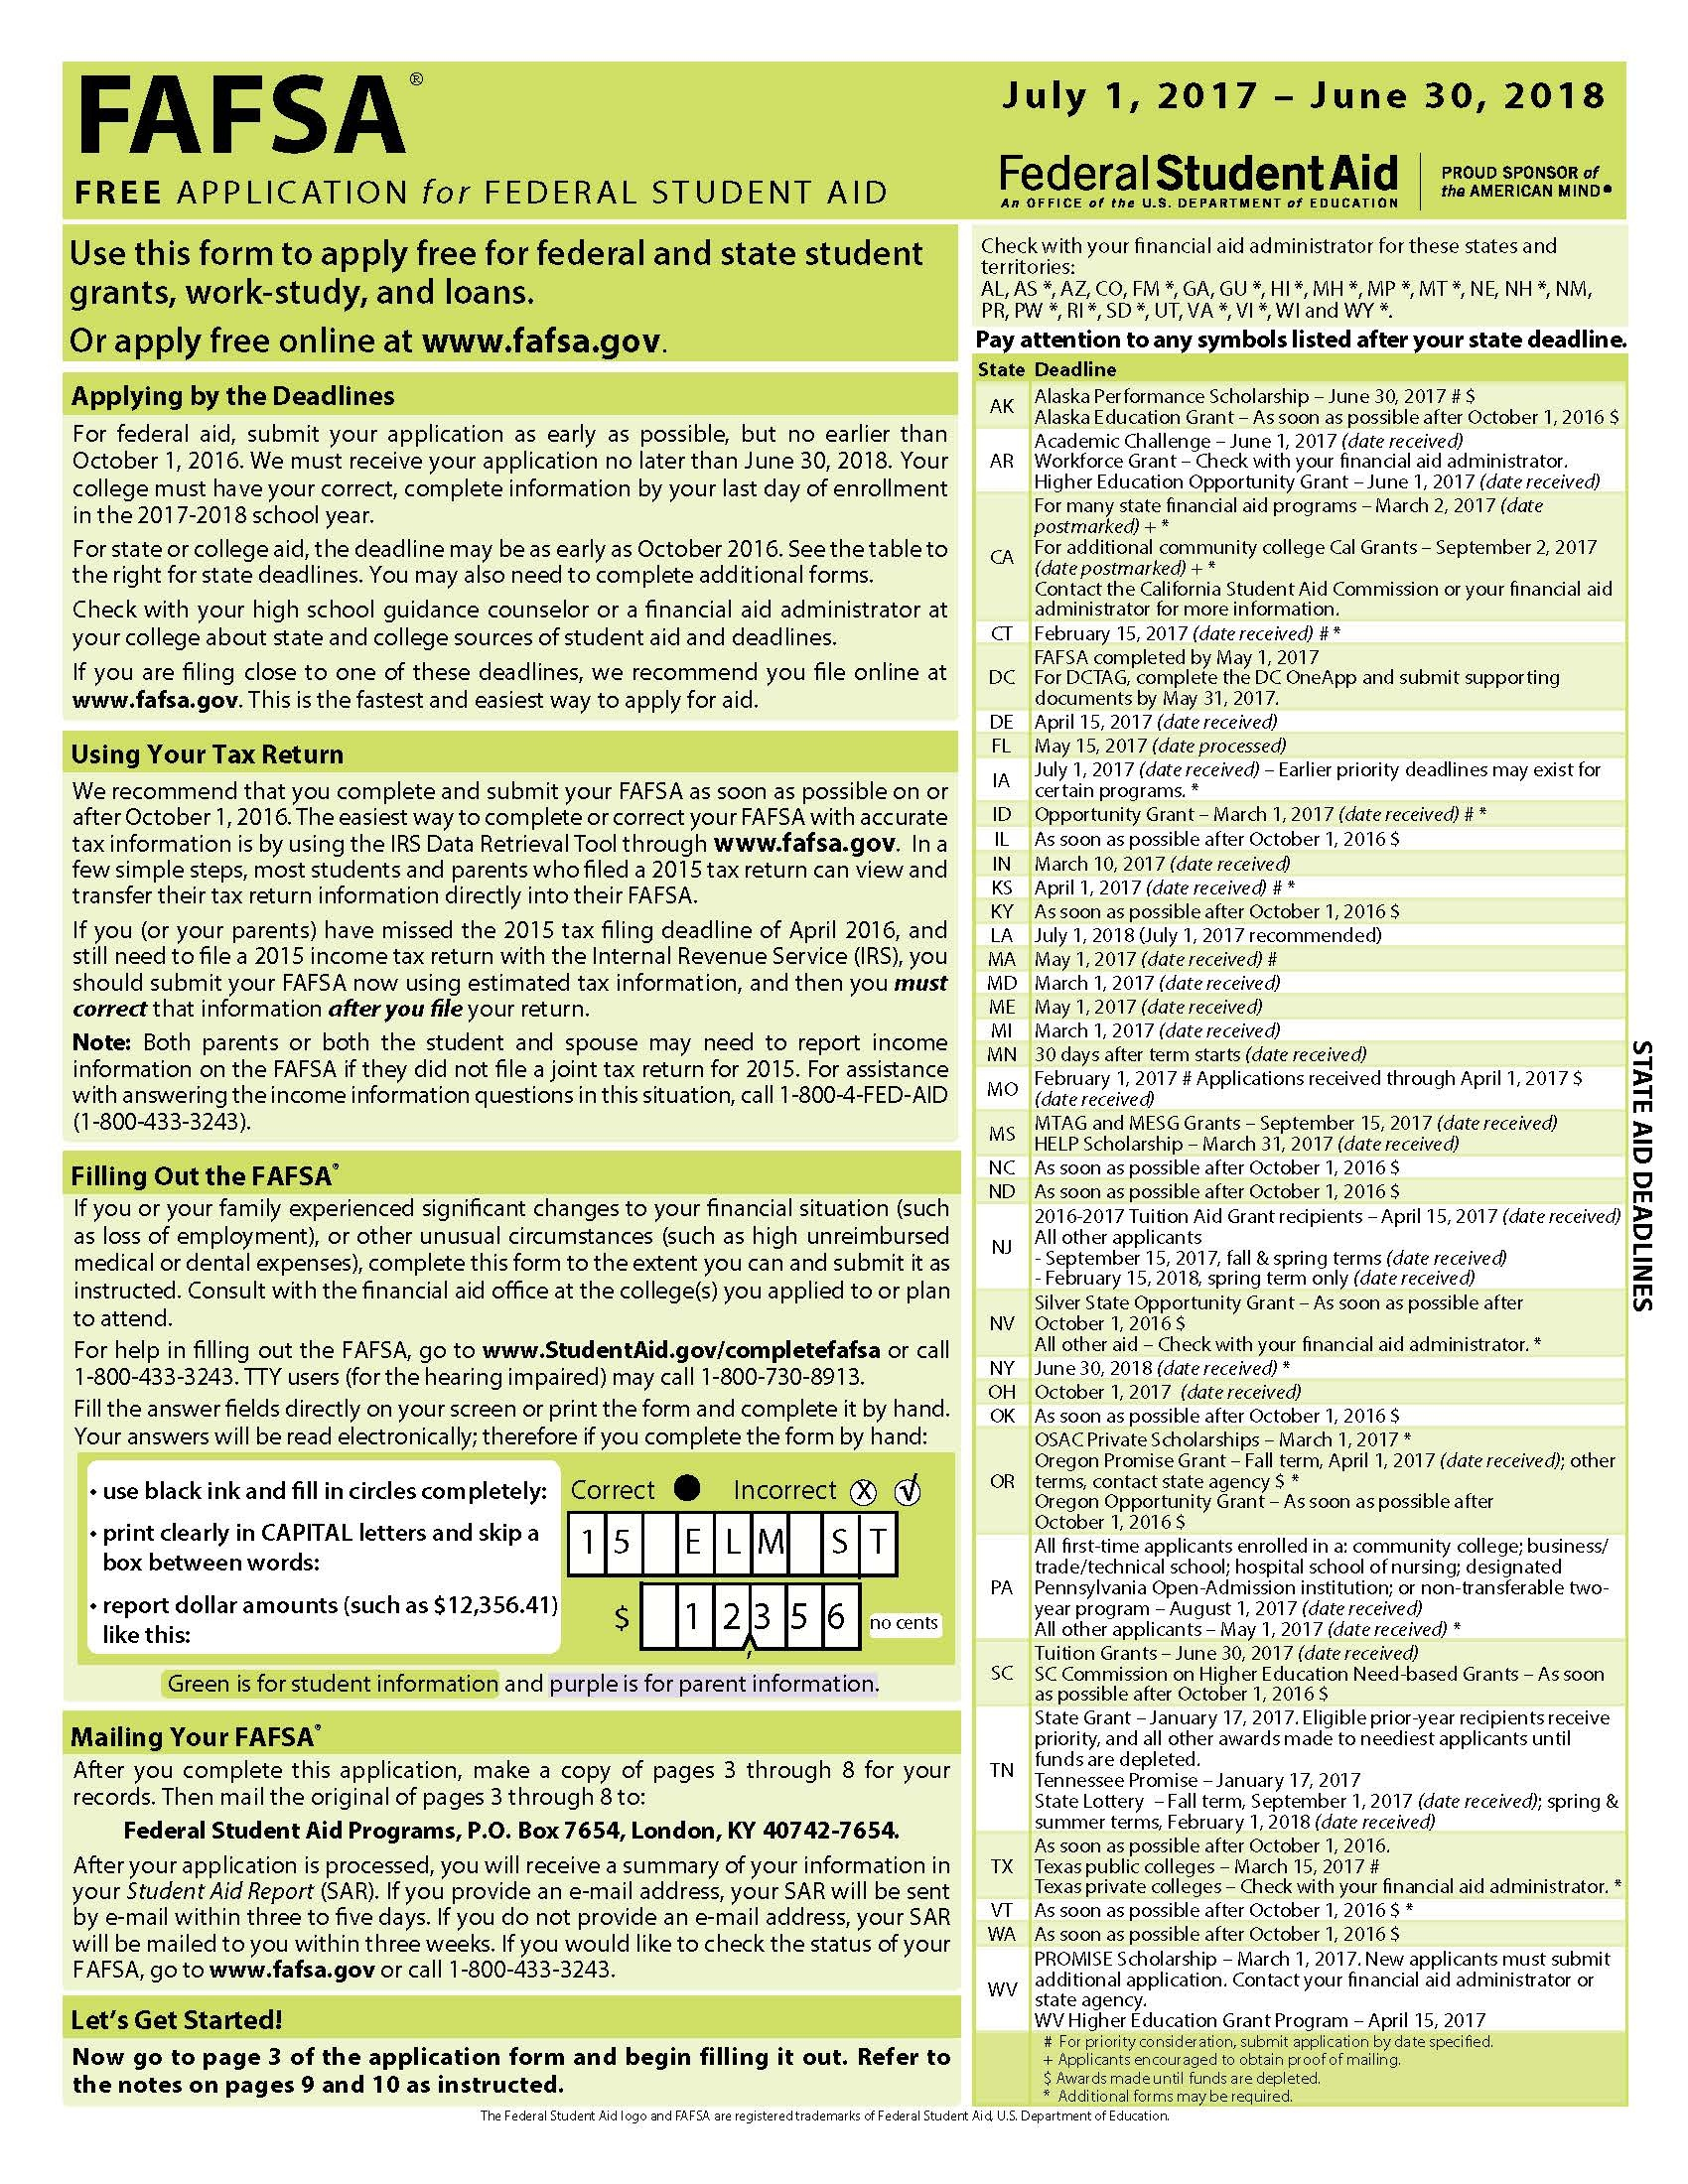 Fafsa Form Archive: Recent Changes | Edvisors - Free Printable Fafsa Application Form